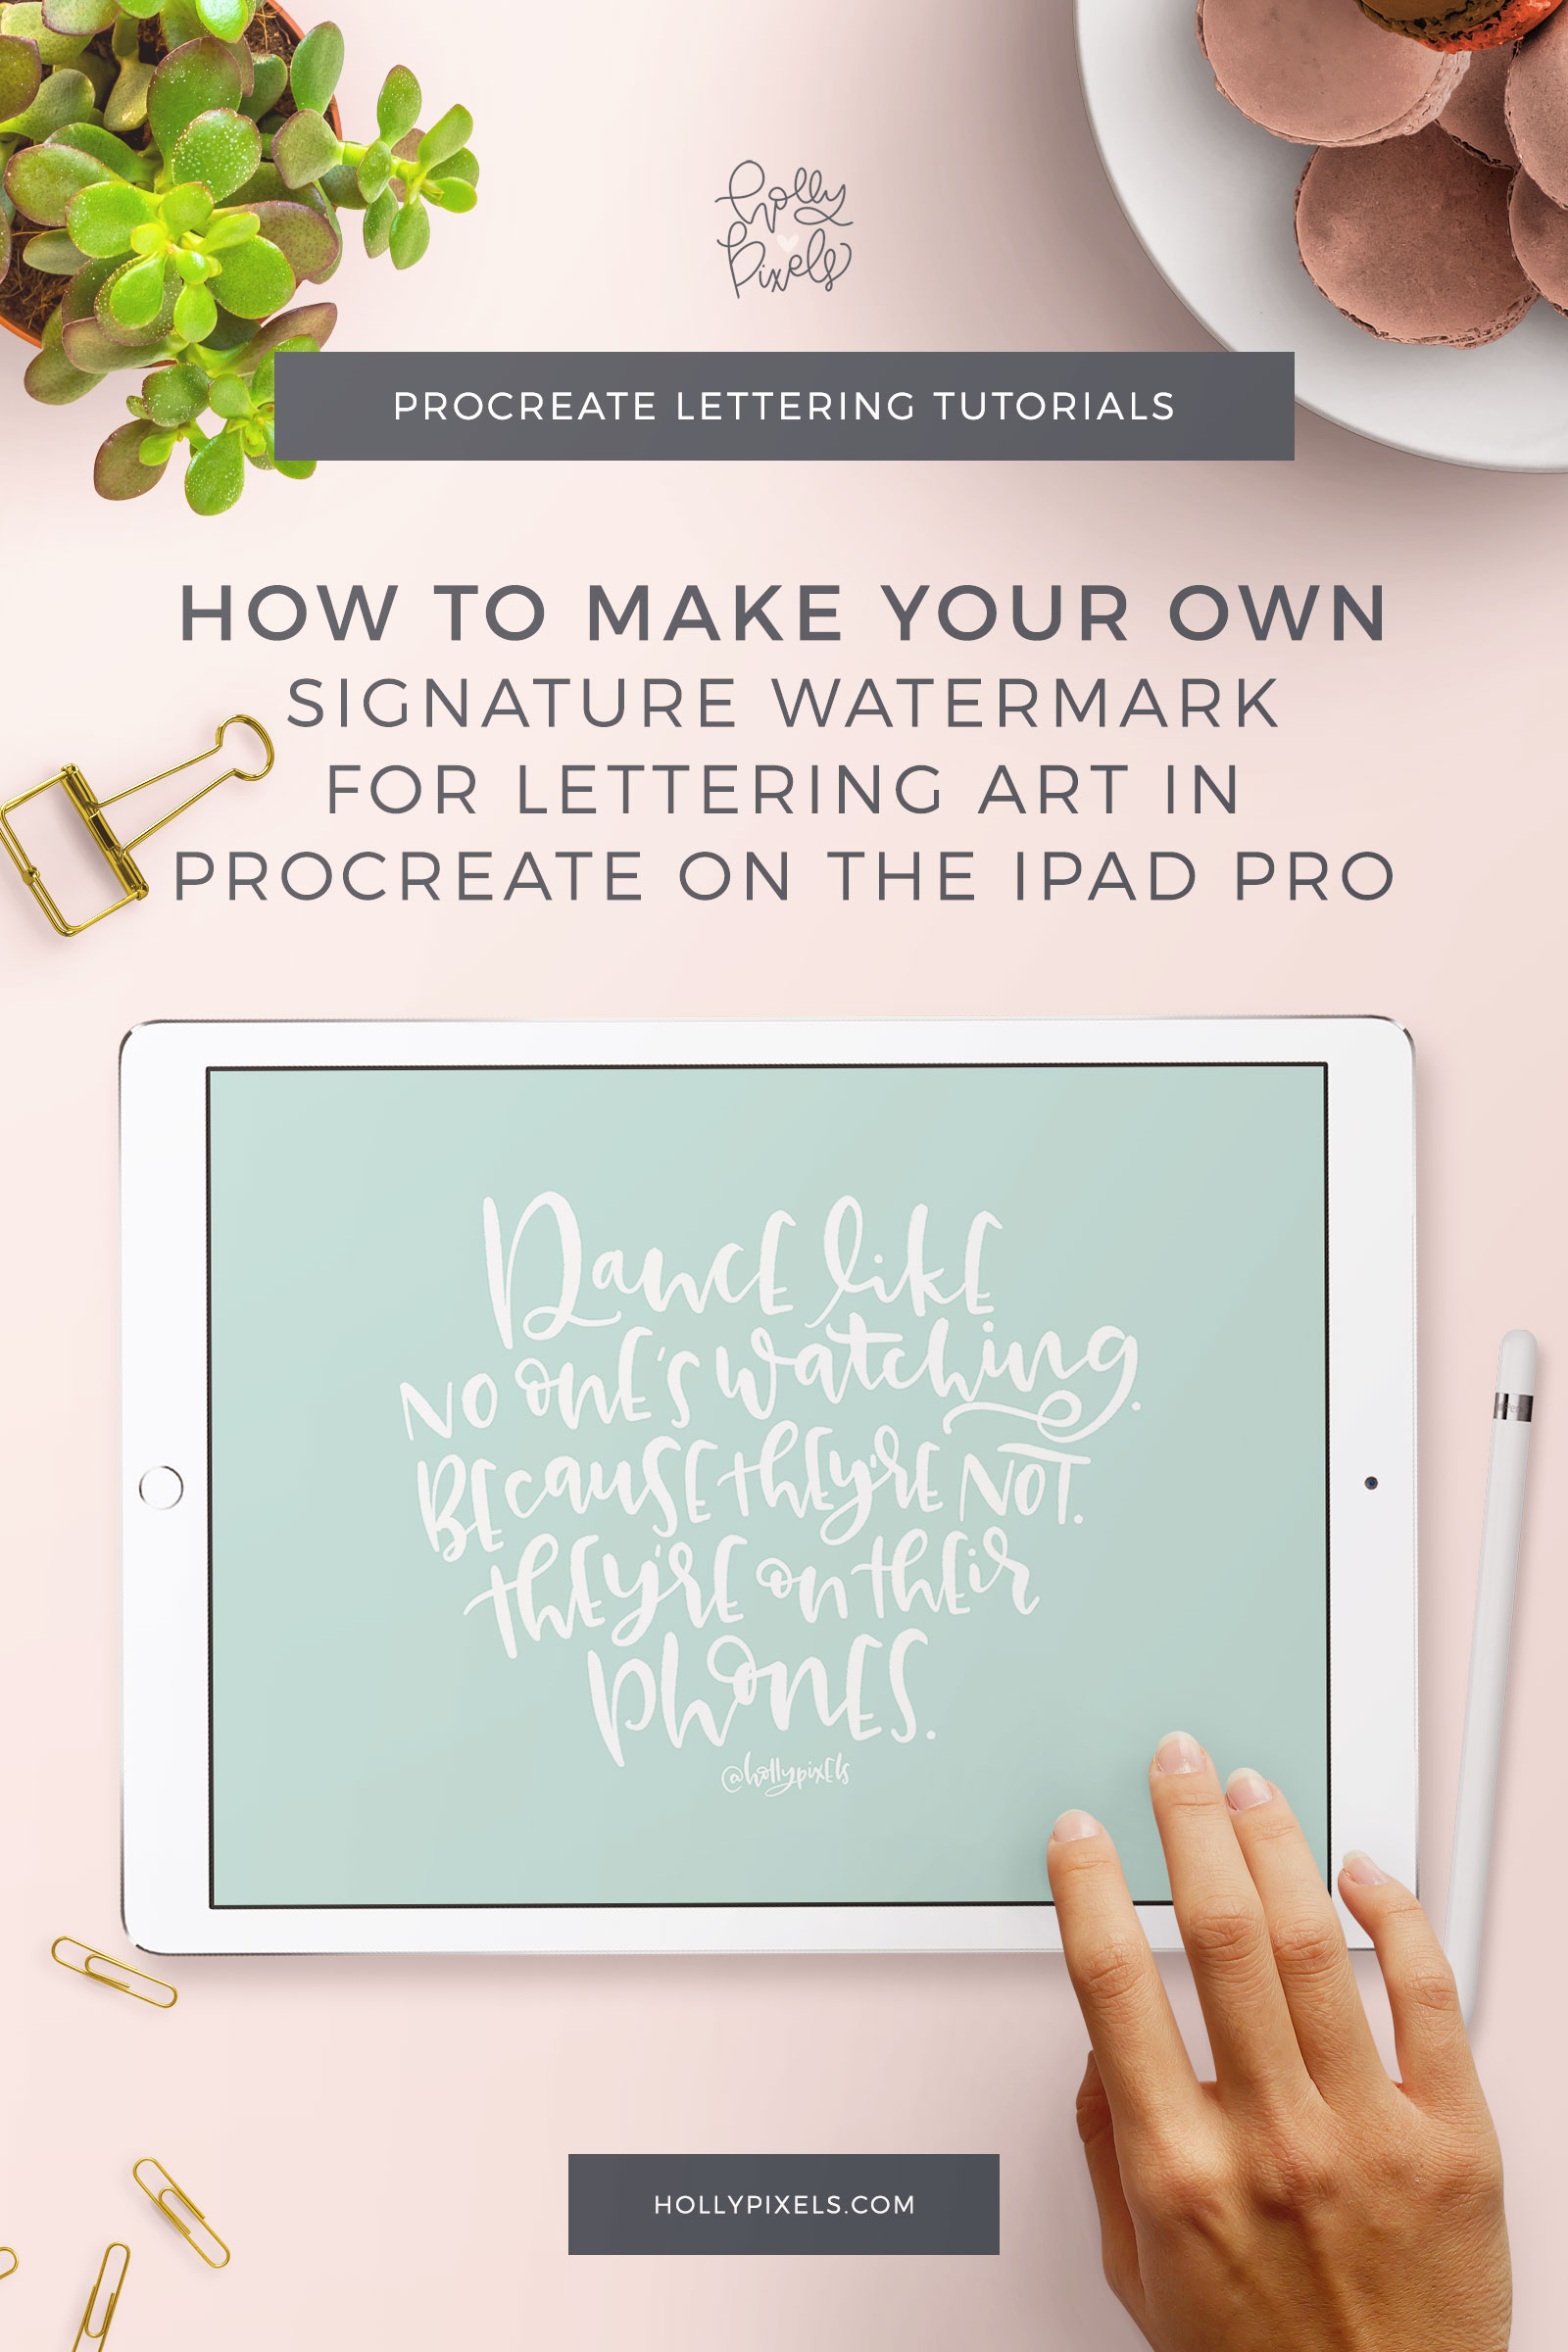 In this tutorial I'll show you how to create a signature watermark brush in Procreate so you can sign your lettering art digitally, quickly.